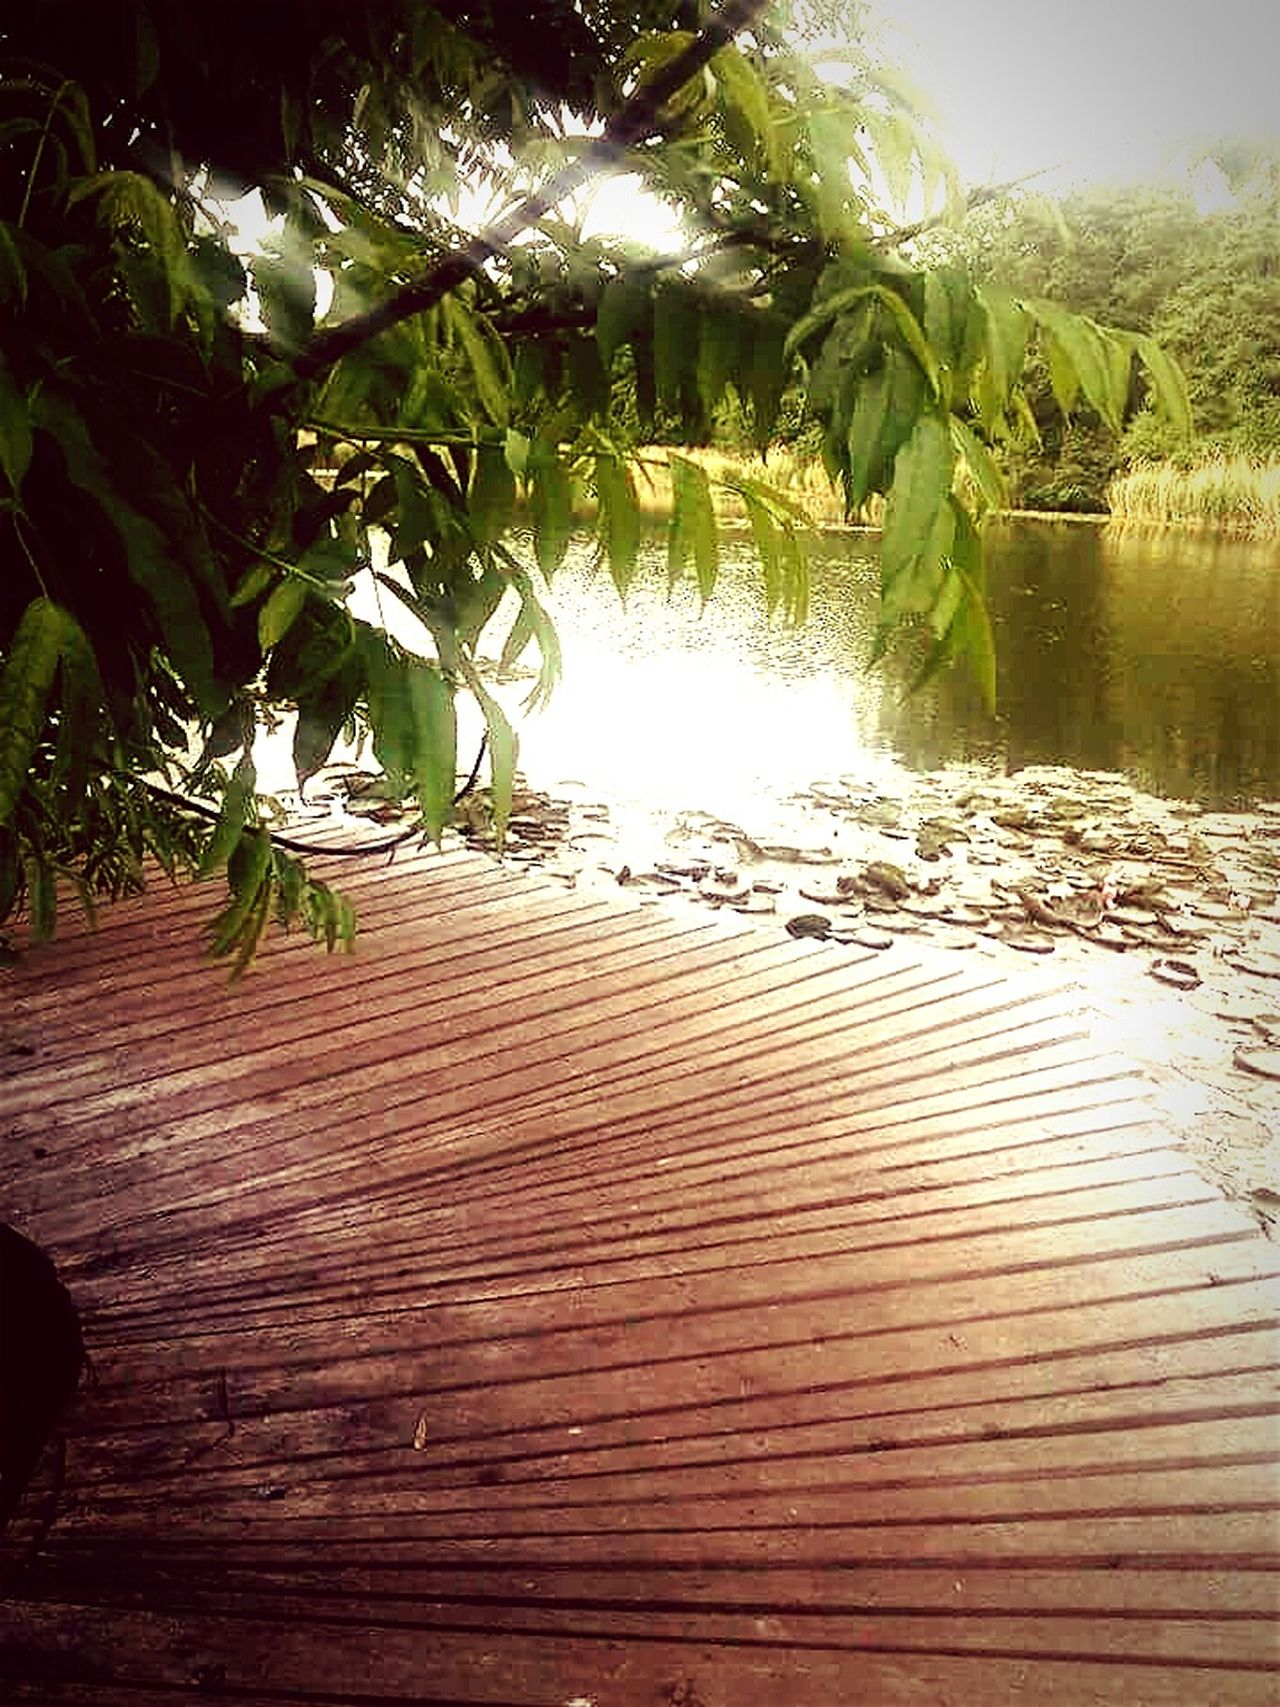 Walking Around Relaxing Eye Em Nature Lover EyeEm Best Shots - Nature Lovely Place Lake View Water Reflections Water - Collection Seeing The Sights